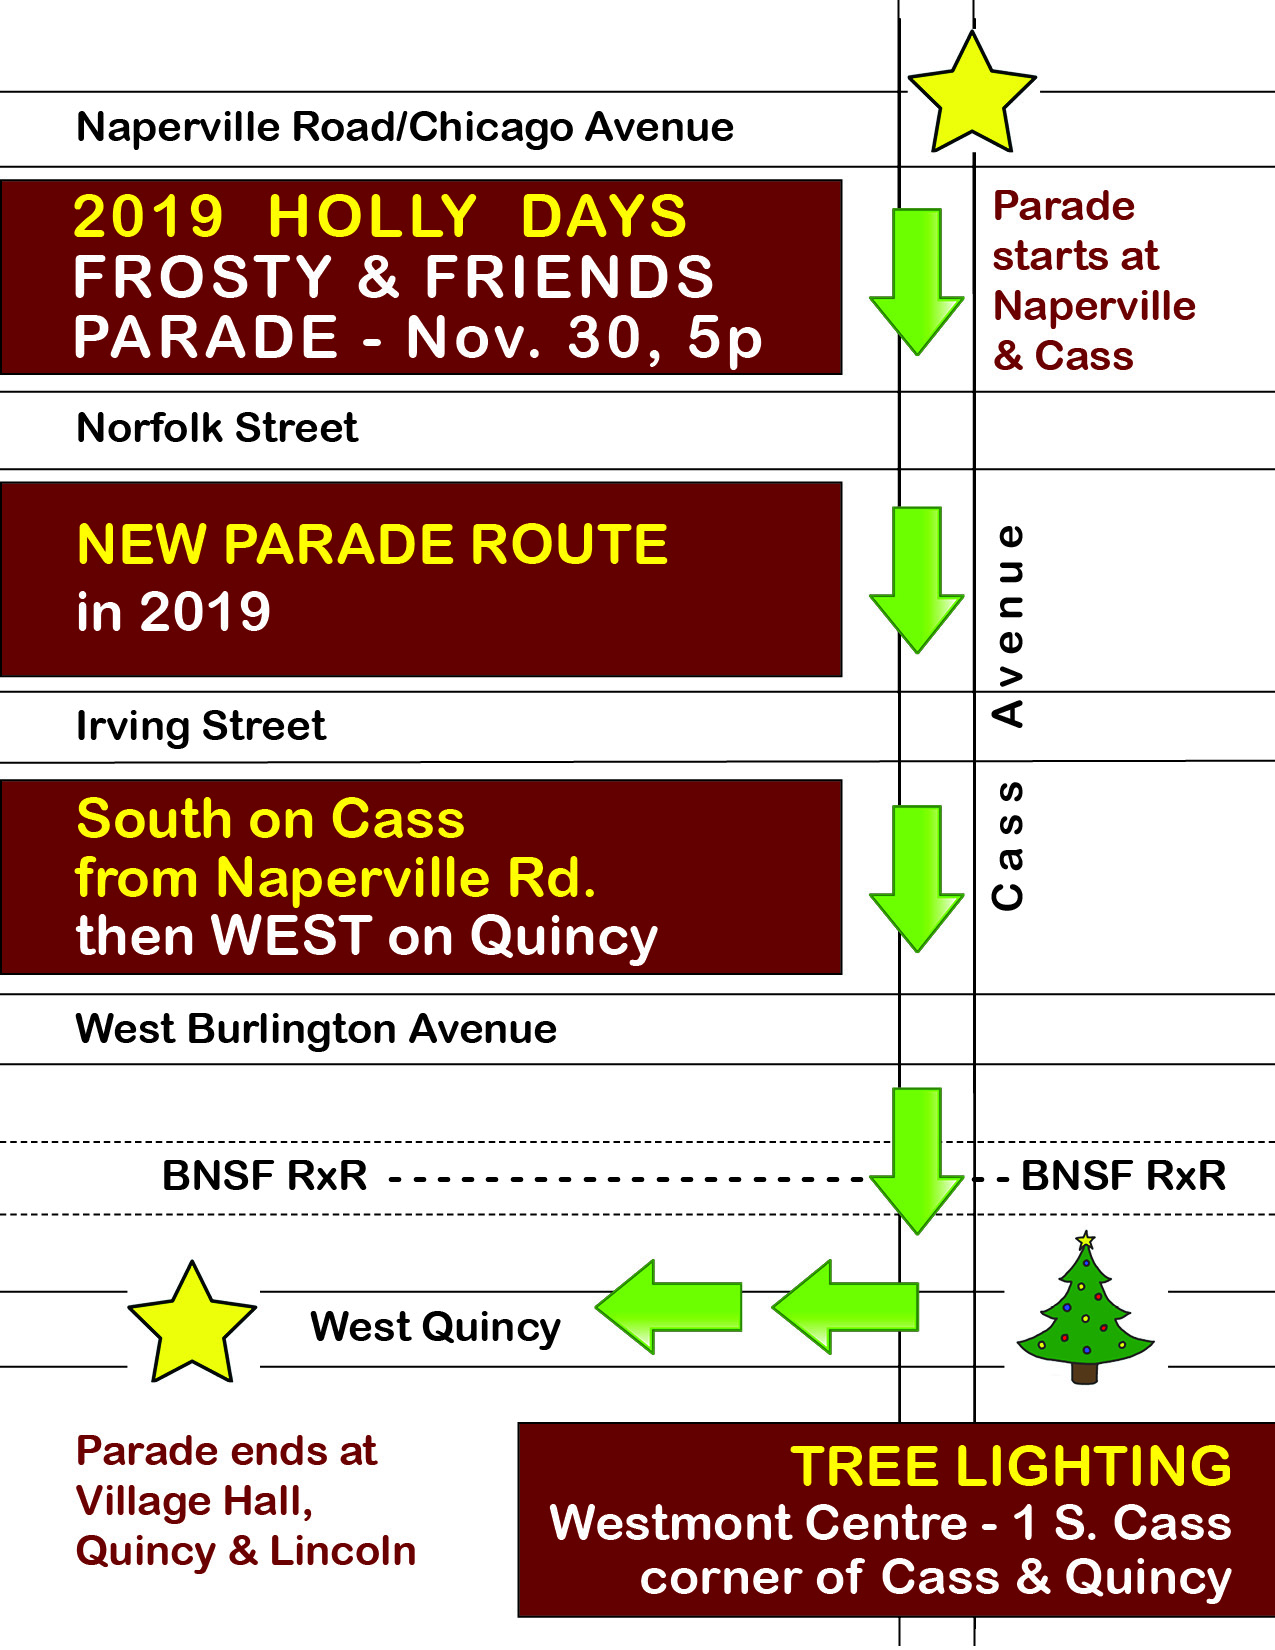 2019 Holly Days Parade Route